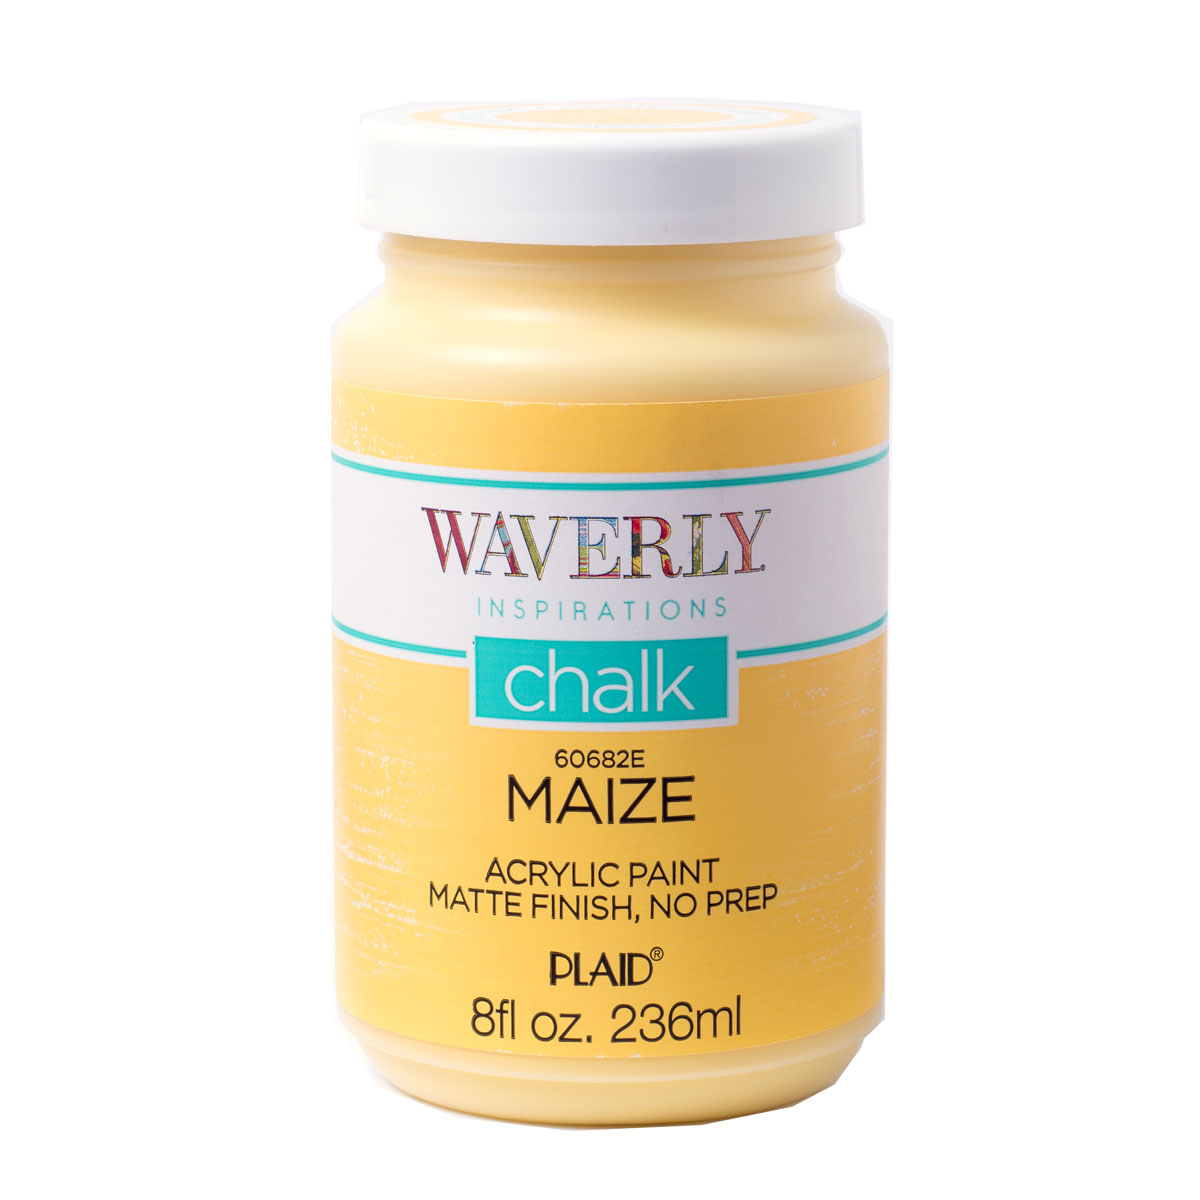 Waverly ® Inspirations Chalk Acrylic Paint - Maize, 8 oz. - 60682E